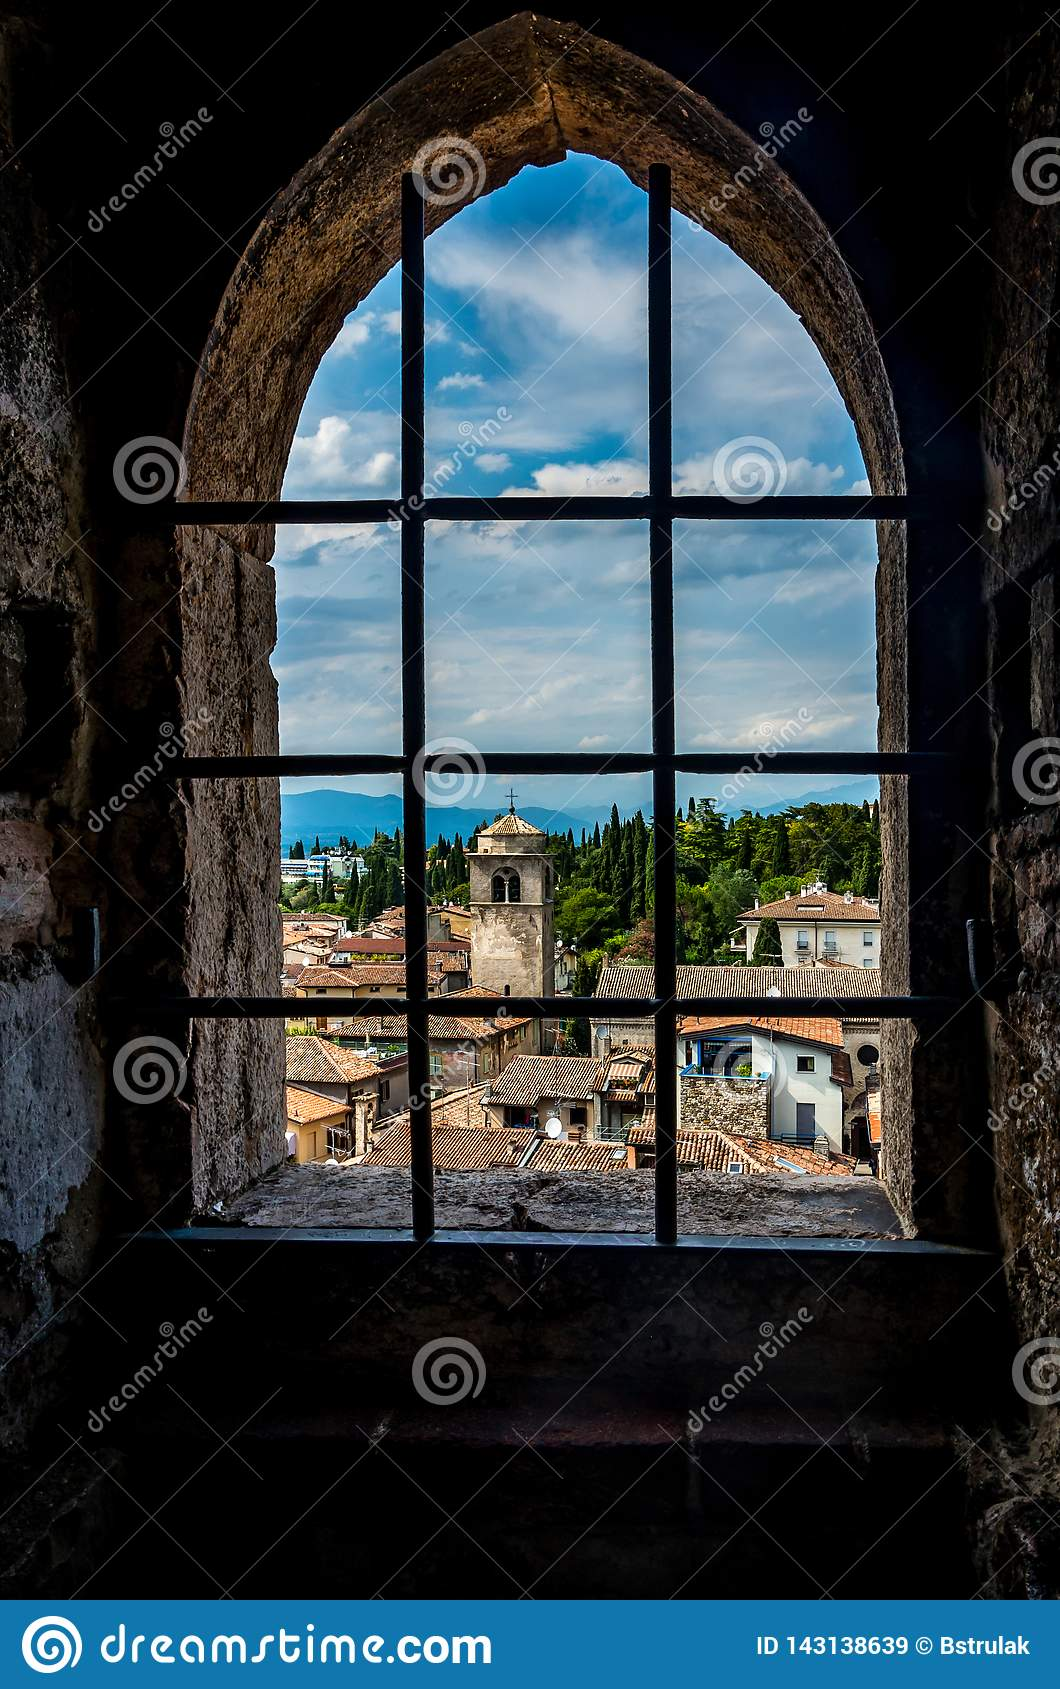 The small picturesque town Sirmione by the Lake Garda in Italy framed in a window